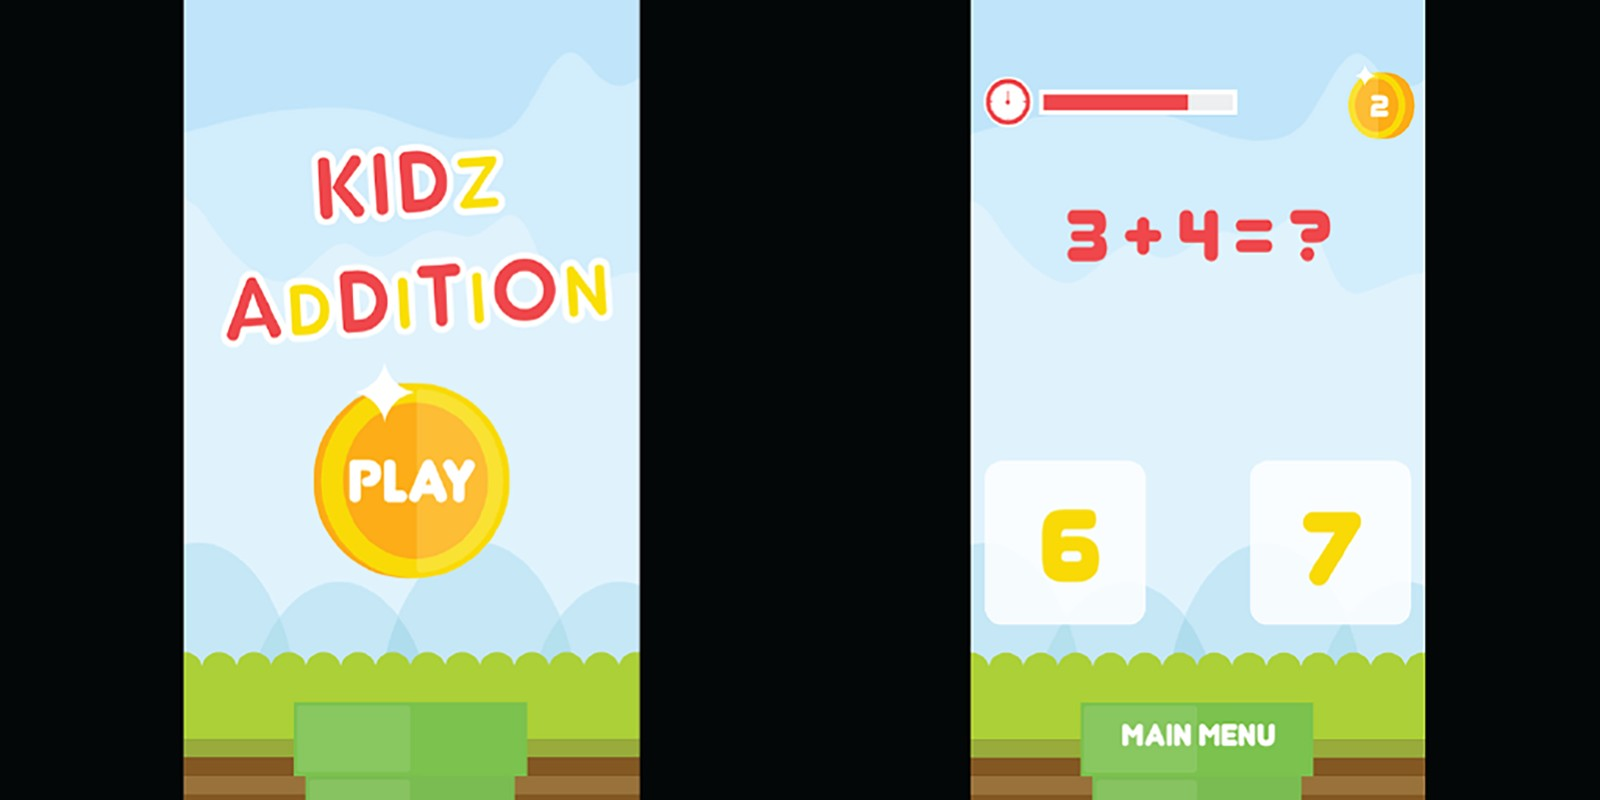 Kidz Addition Construct 2 Game Template